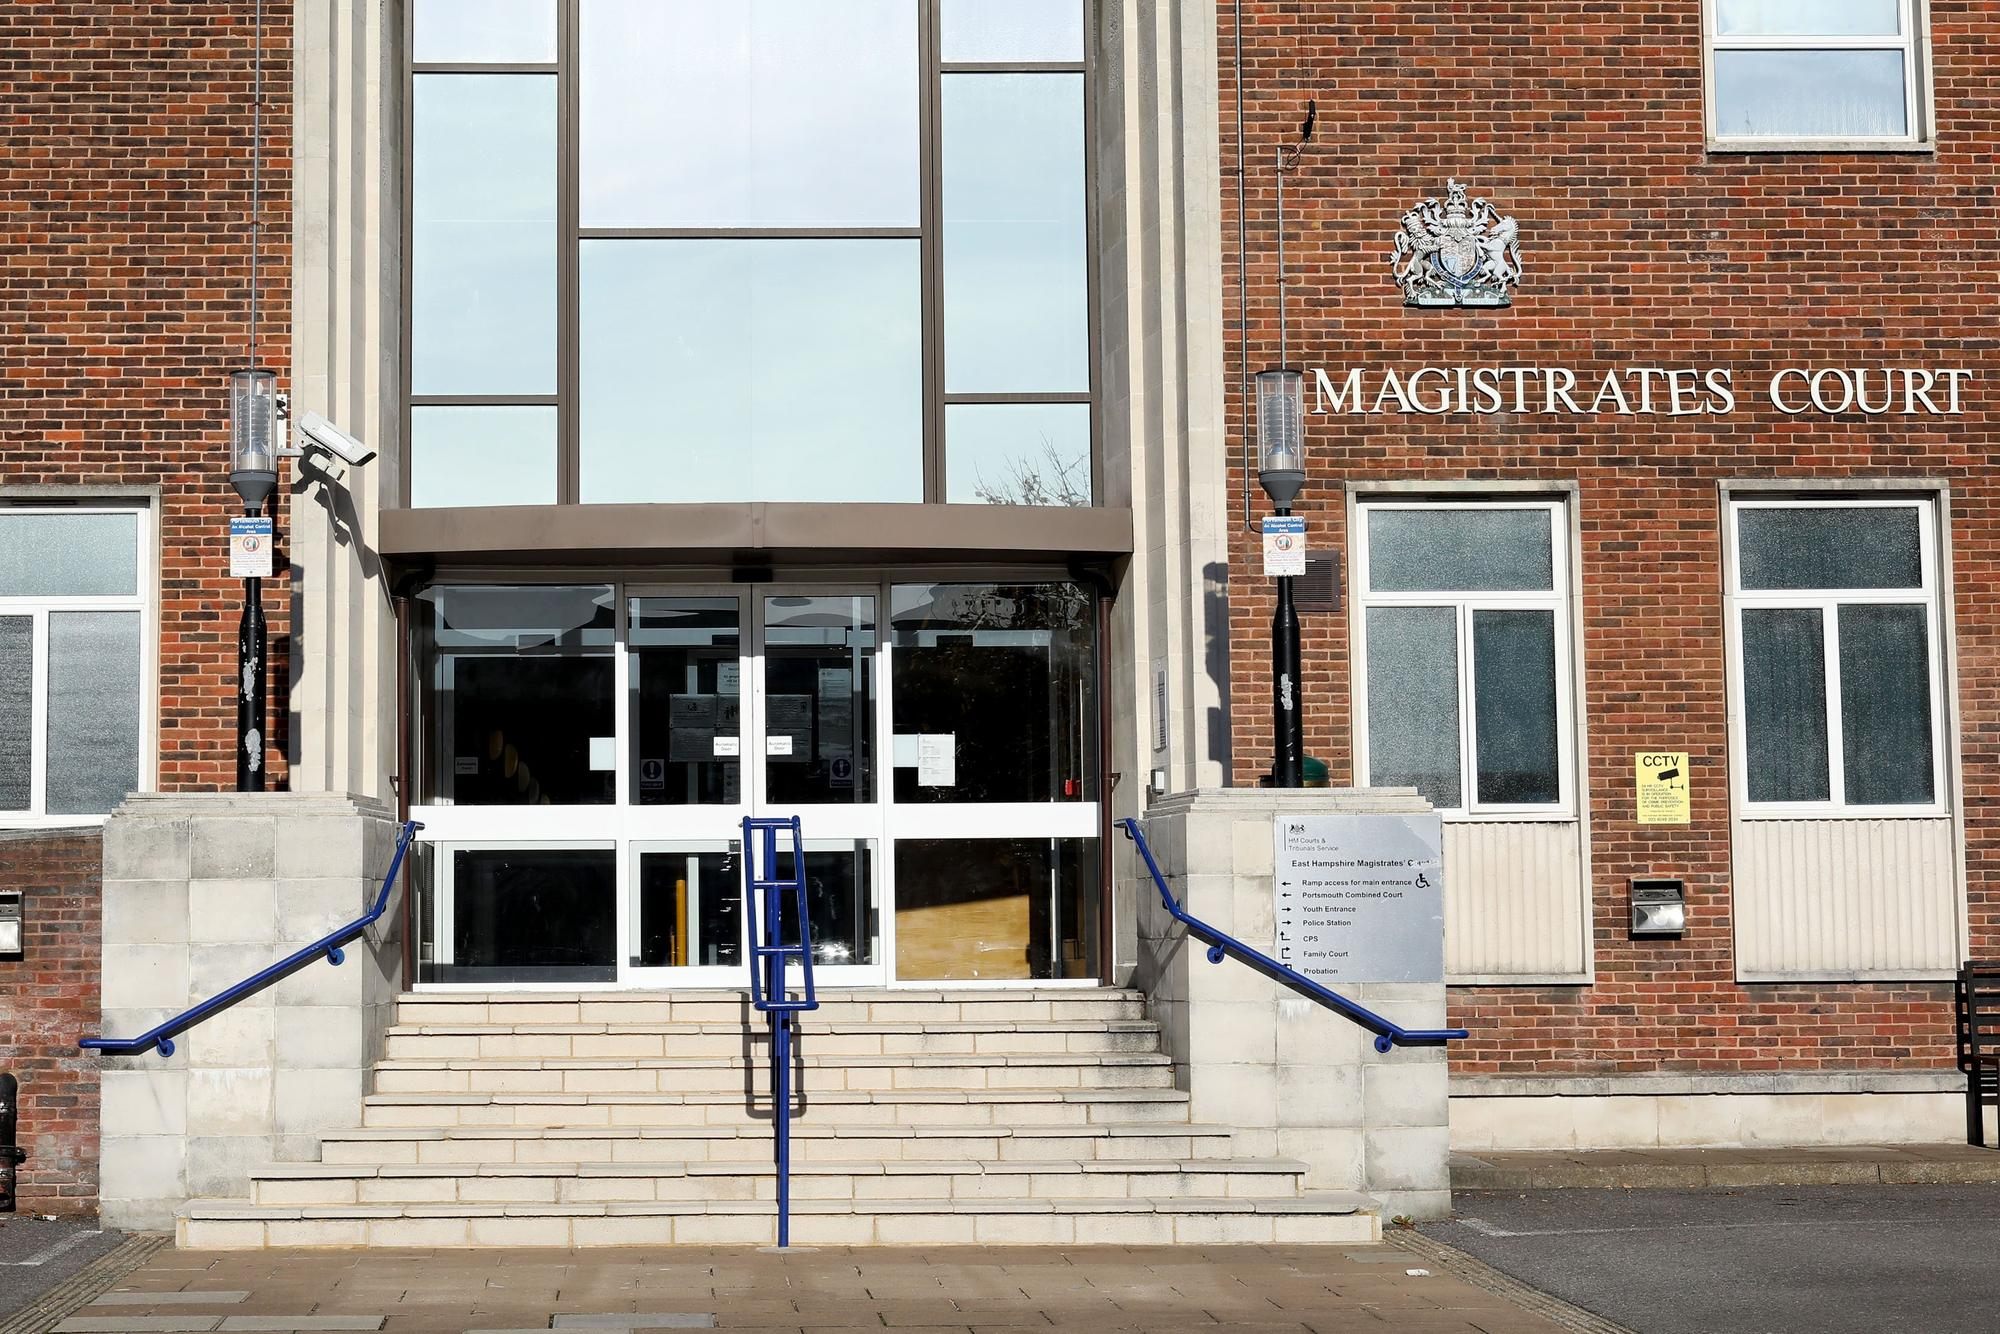 Portsmouth Magistrates' Court - latest update